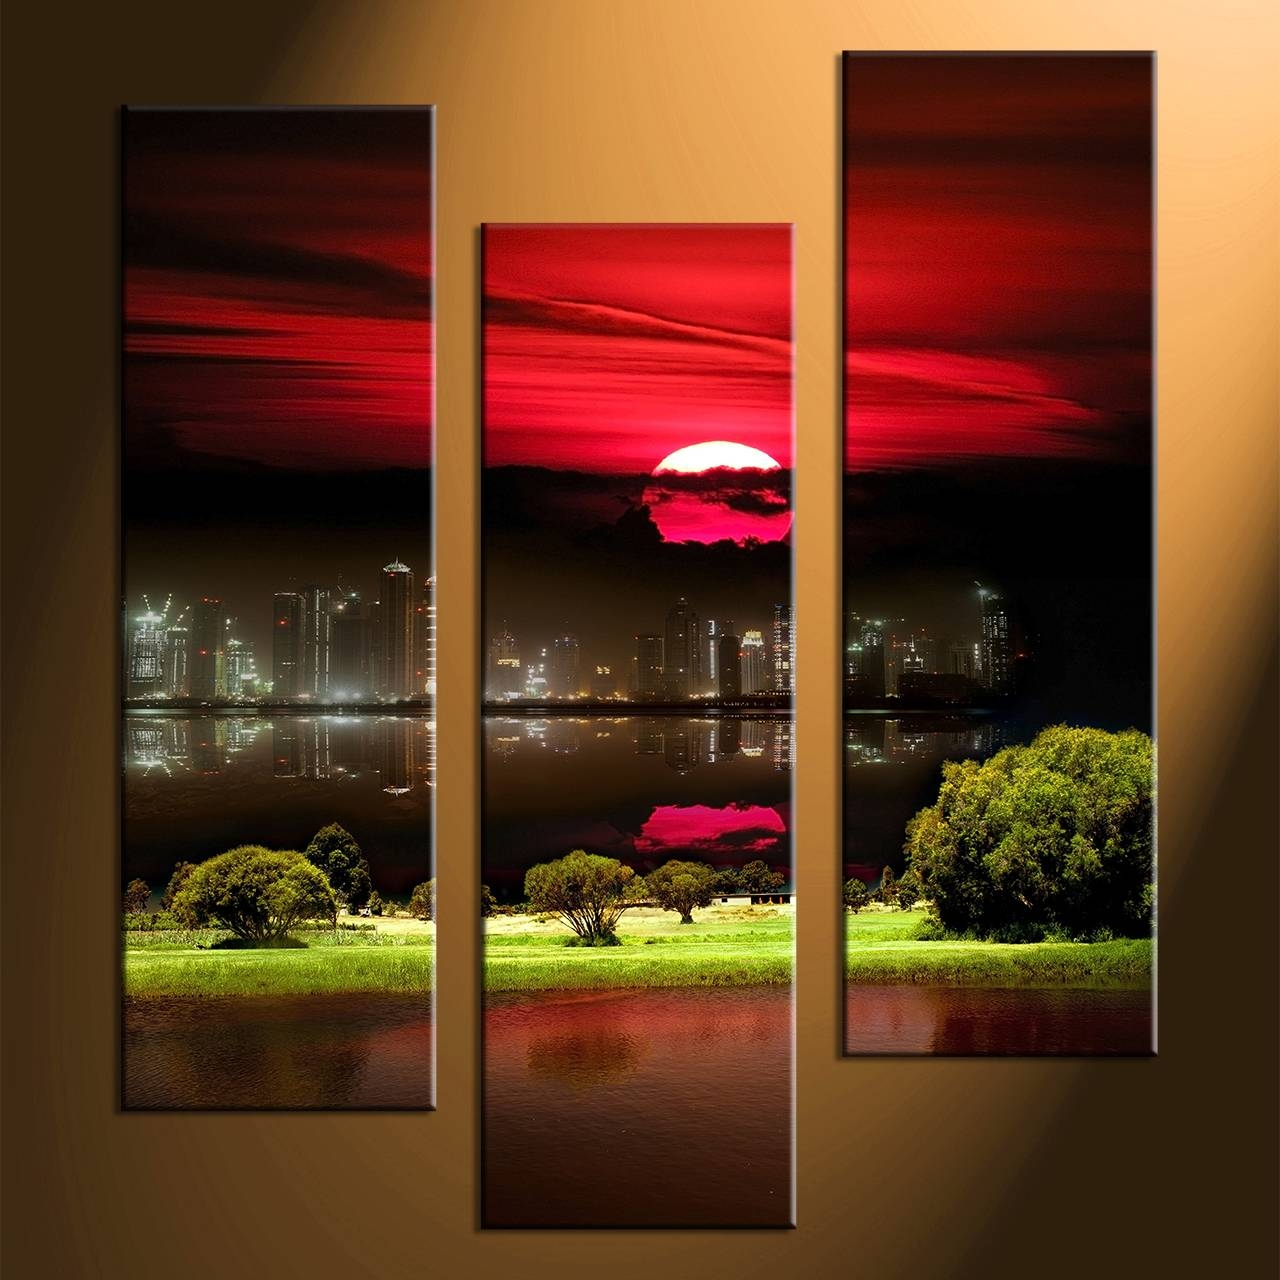 Outstanding White Blossom'' 2 Piece Canvas Wall Art Set Piece Pertaining To Most Current Canvas Wall Art 3 Piece Sets (View 14 of 20)